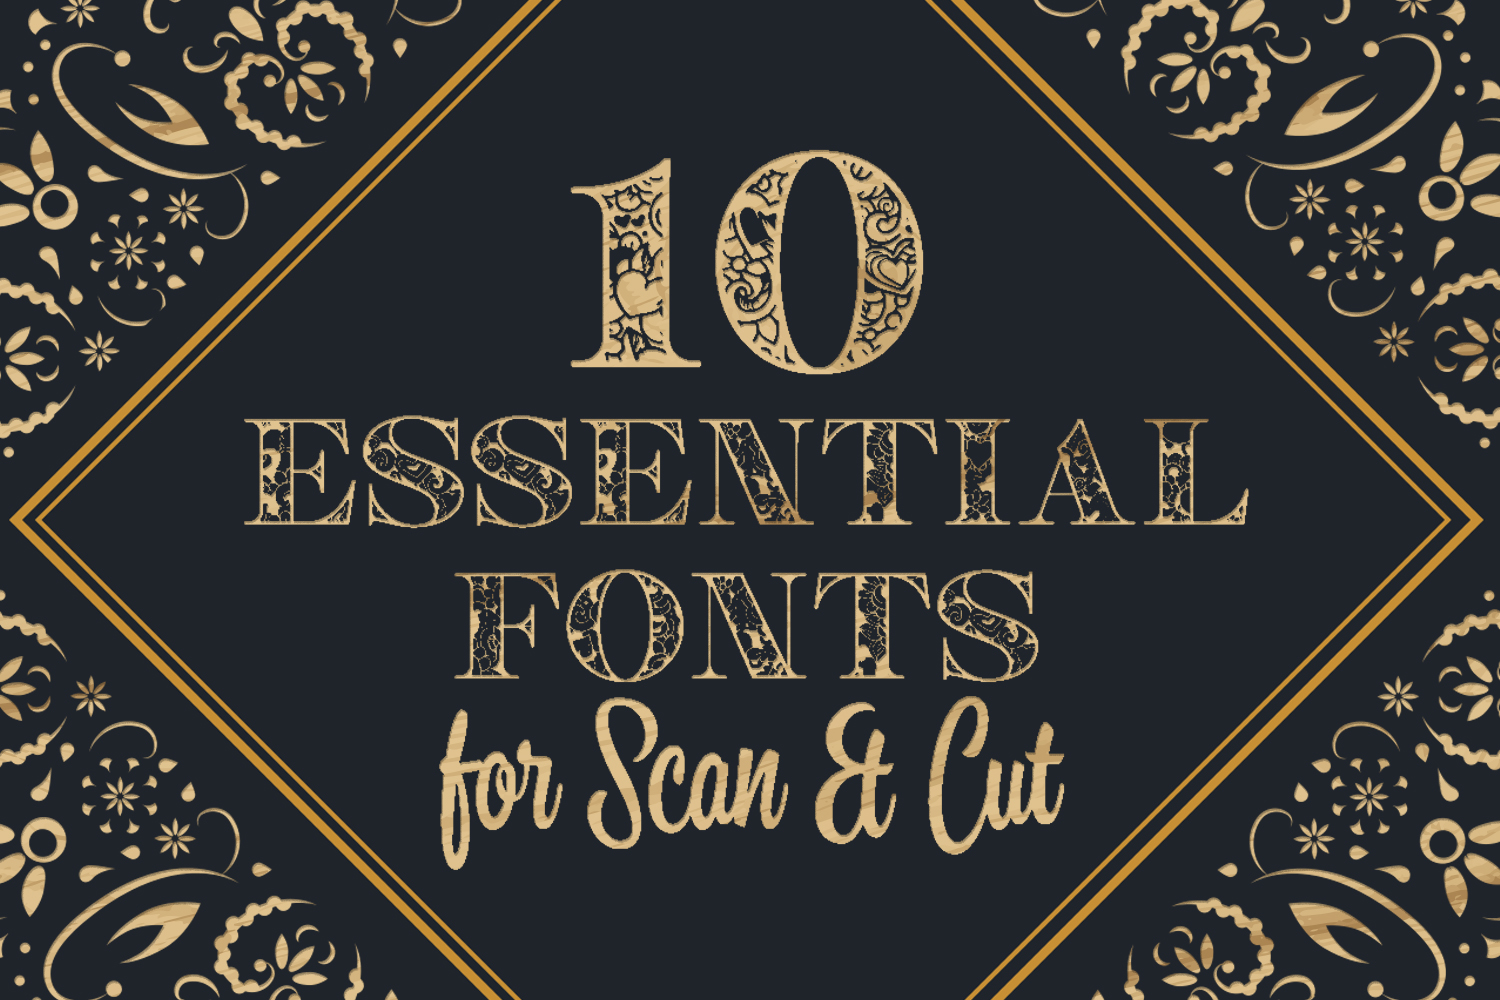 10 Essential Fonts for Scan N Cut